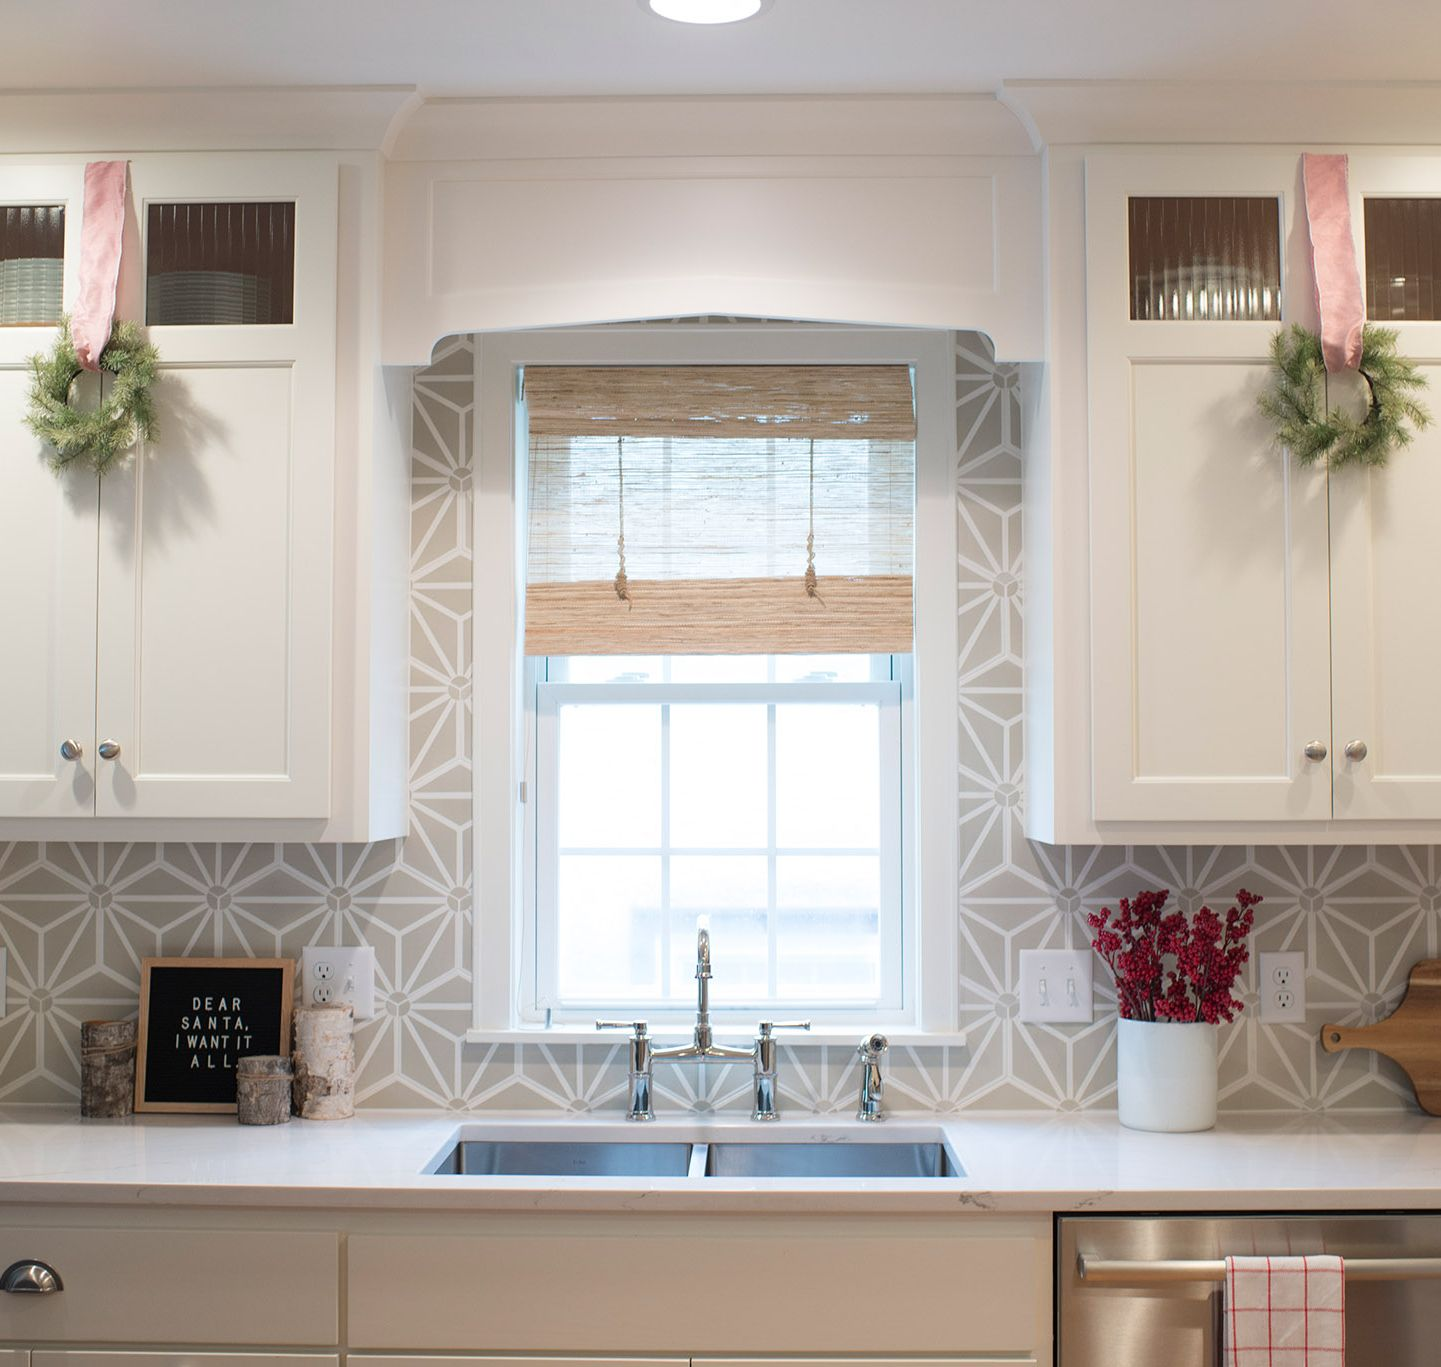 A red and white palette creates Christmas simplicity in this kitchen featuring Ella